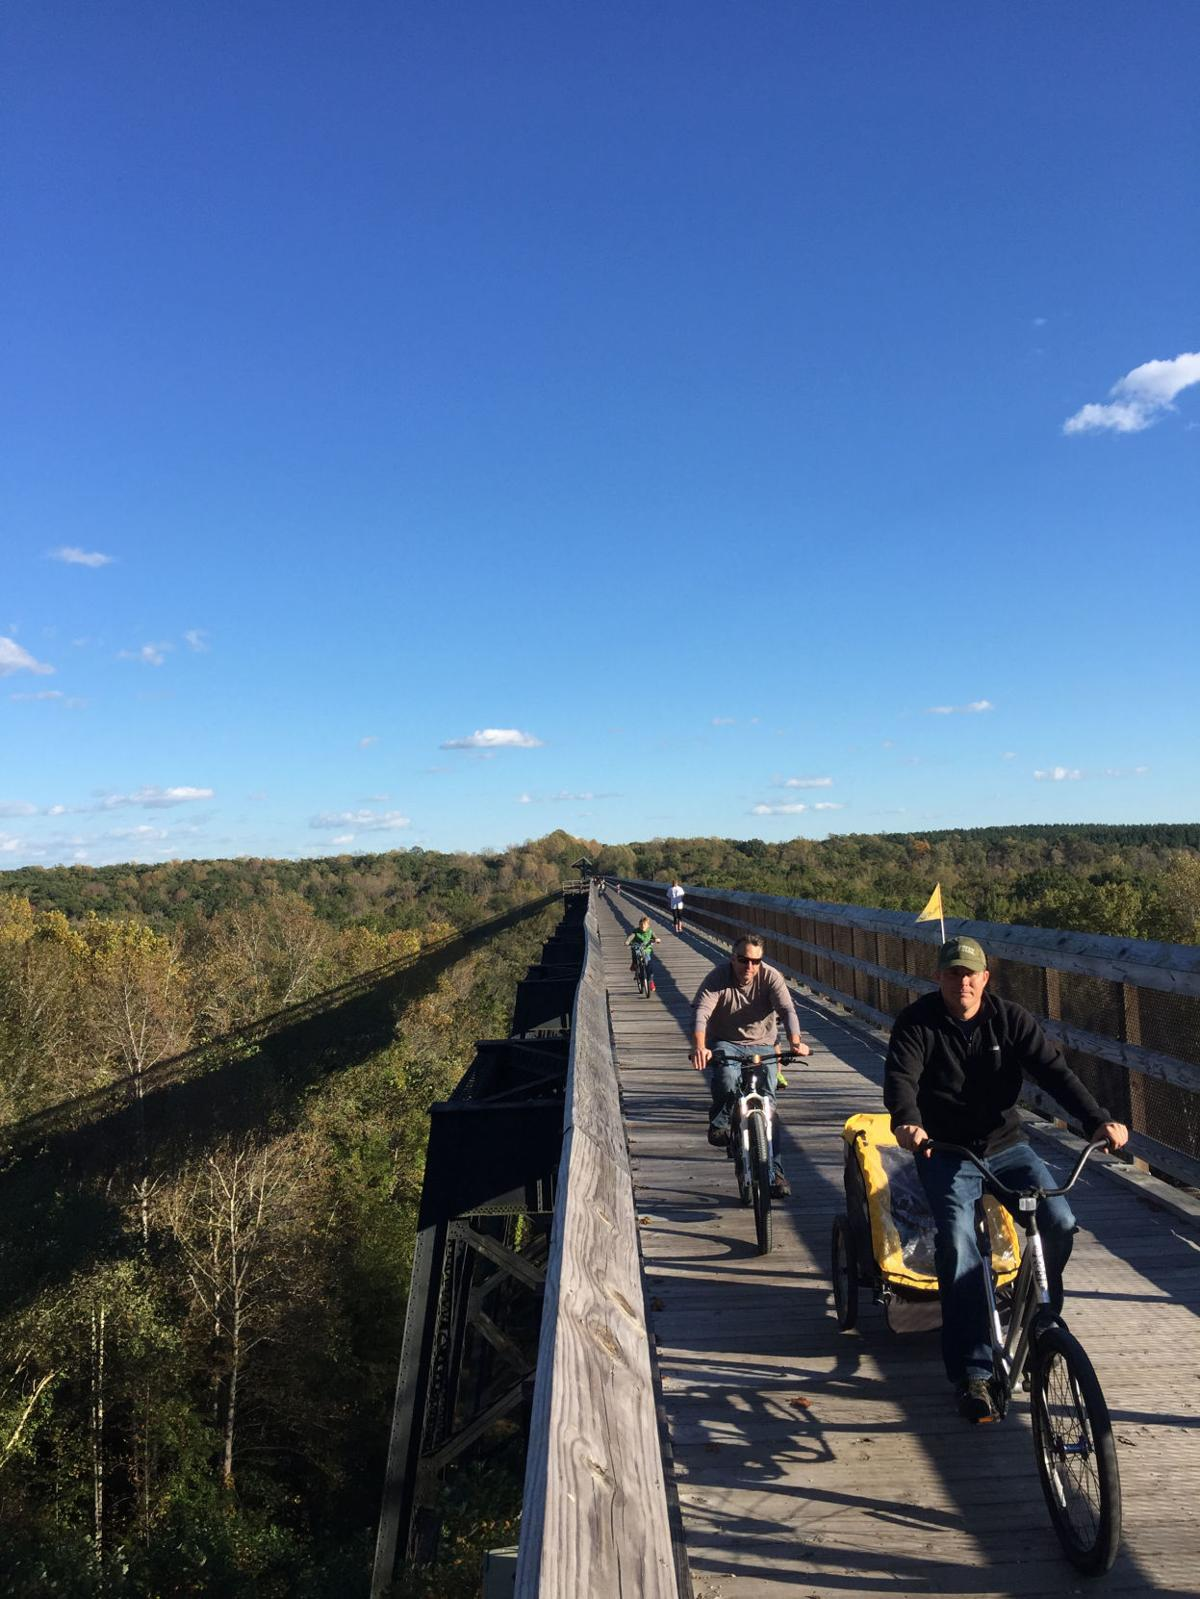 Day trip to Farmville: From Green Front to High Bridge to